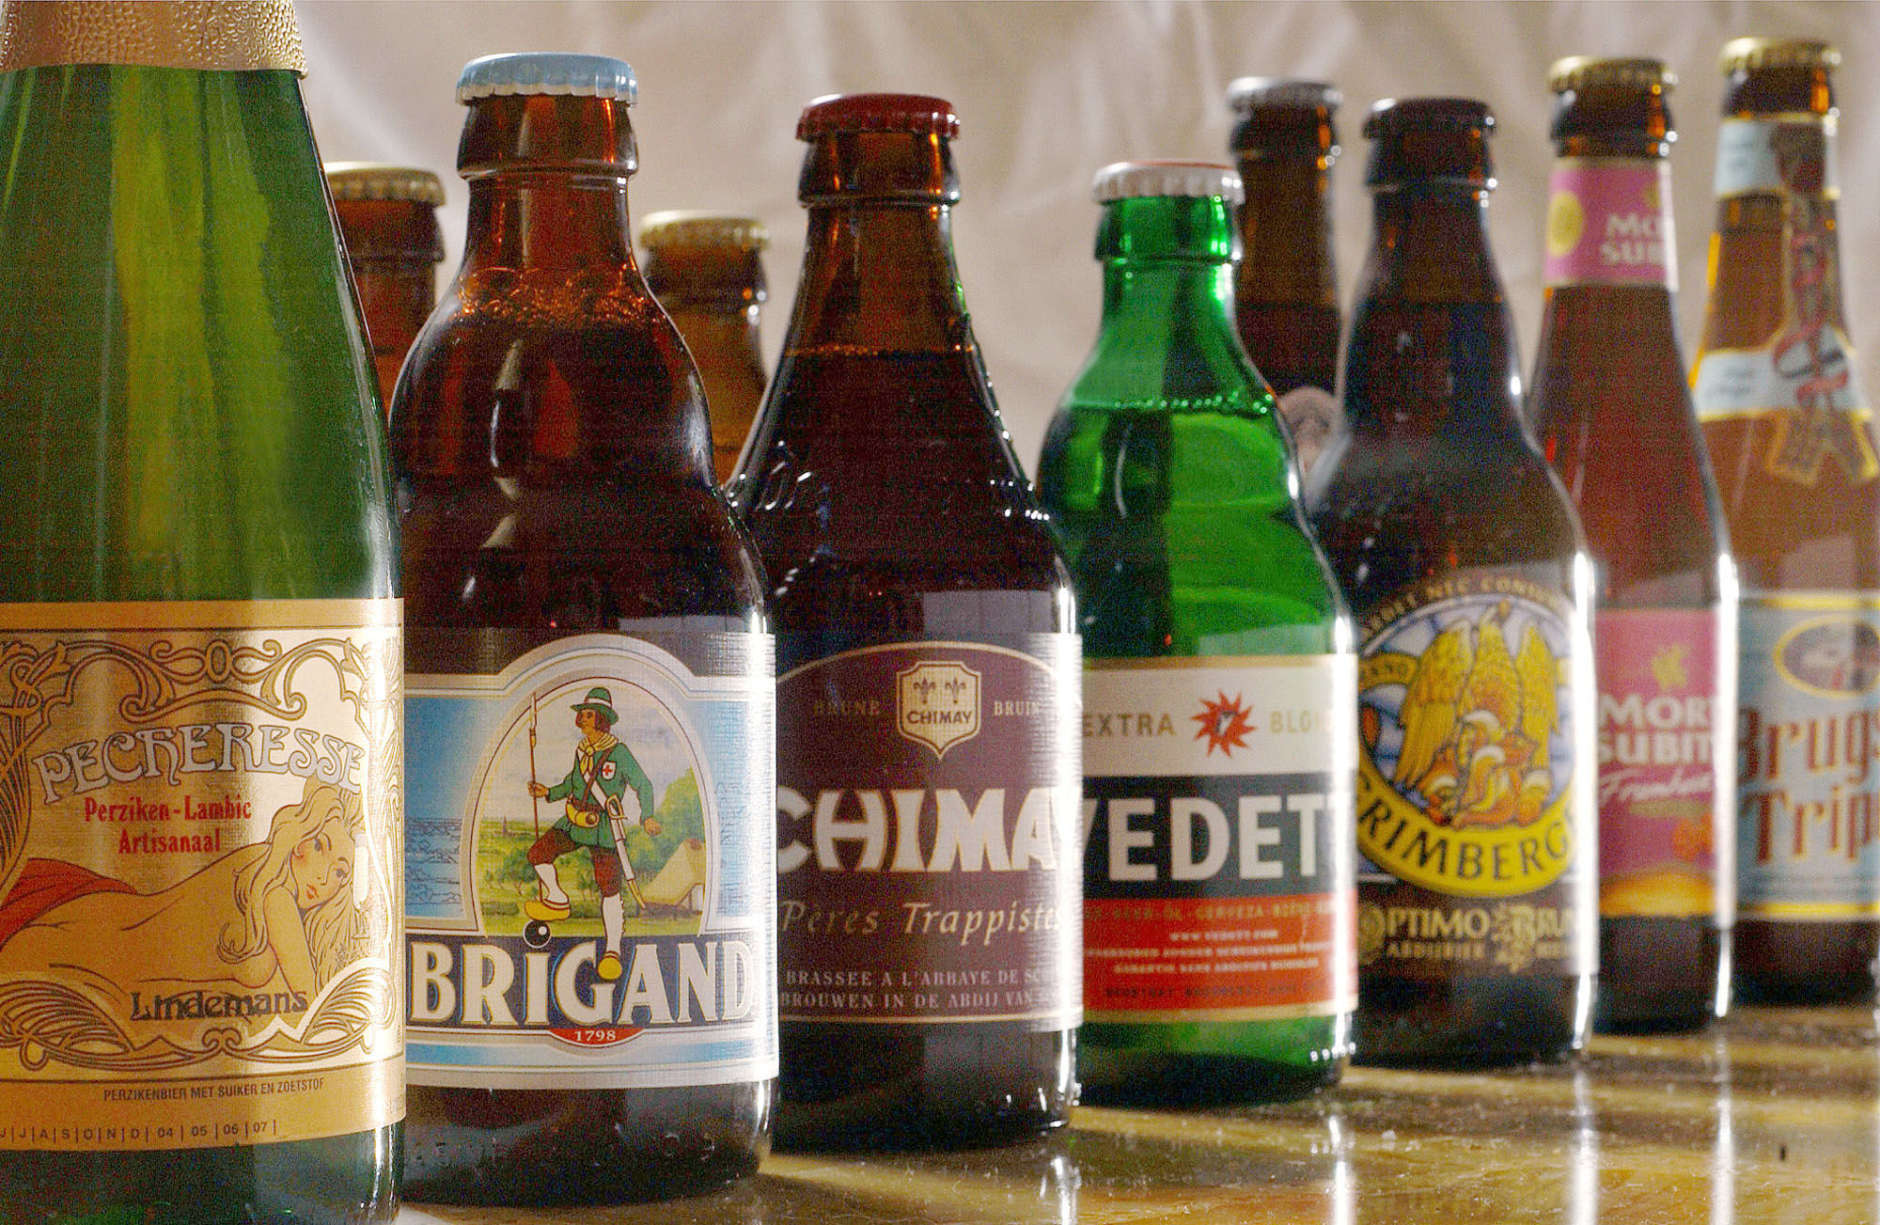 A selection, out of more than 450 types, of beer is shown in Brussels, Belgium, March 10, 2004. Learning the finer points of Belgian beer can be daunting, with types of beer ranging from lambics and fruit lambics, to Trappists and  Gueuze. (AP Photo/Geert Vanden Wijngaert)